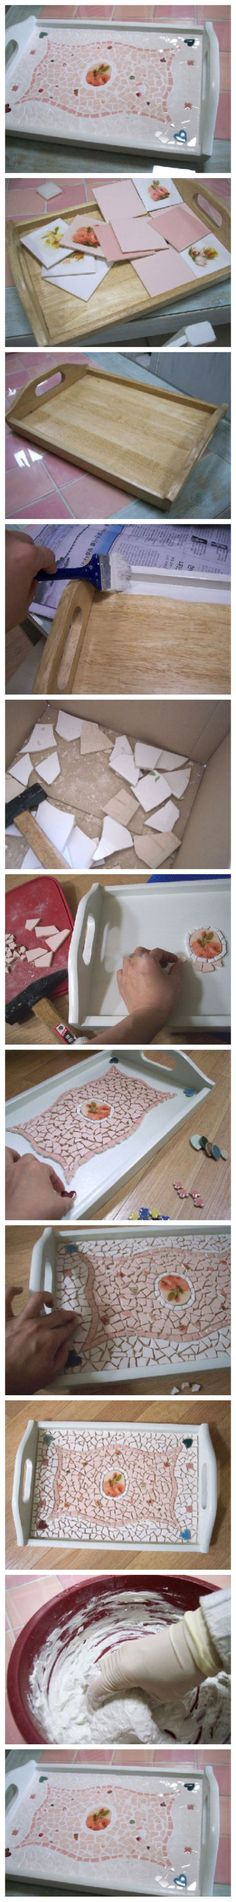 DIY Projects Made With Broken Tile - Mosaic Tray - Best Creative Crafts, Easy DYI Projects You Can Make With Tiles - Mosaic Patterns and Crafty DIY Home Decor Ideas That Make Awesome DIY Gifts and Christmas Presents for Friends and Family Tile Crafts, Mosaic Crafts, Mosaic Projects, Diy Projects To Try, Crafts To Do, Craft Projects, Arts And Crafts, Craft Ideas, Easy Crafts